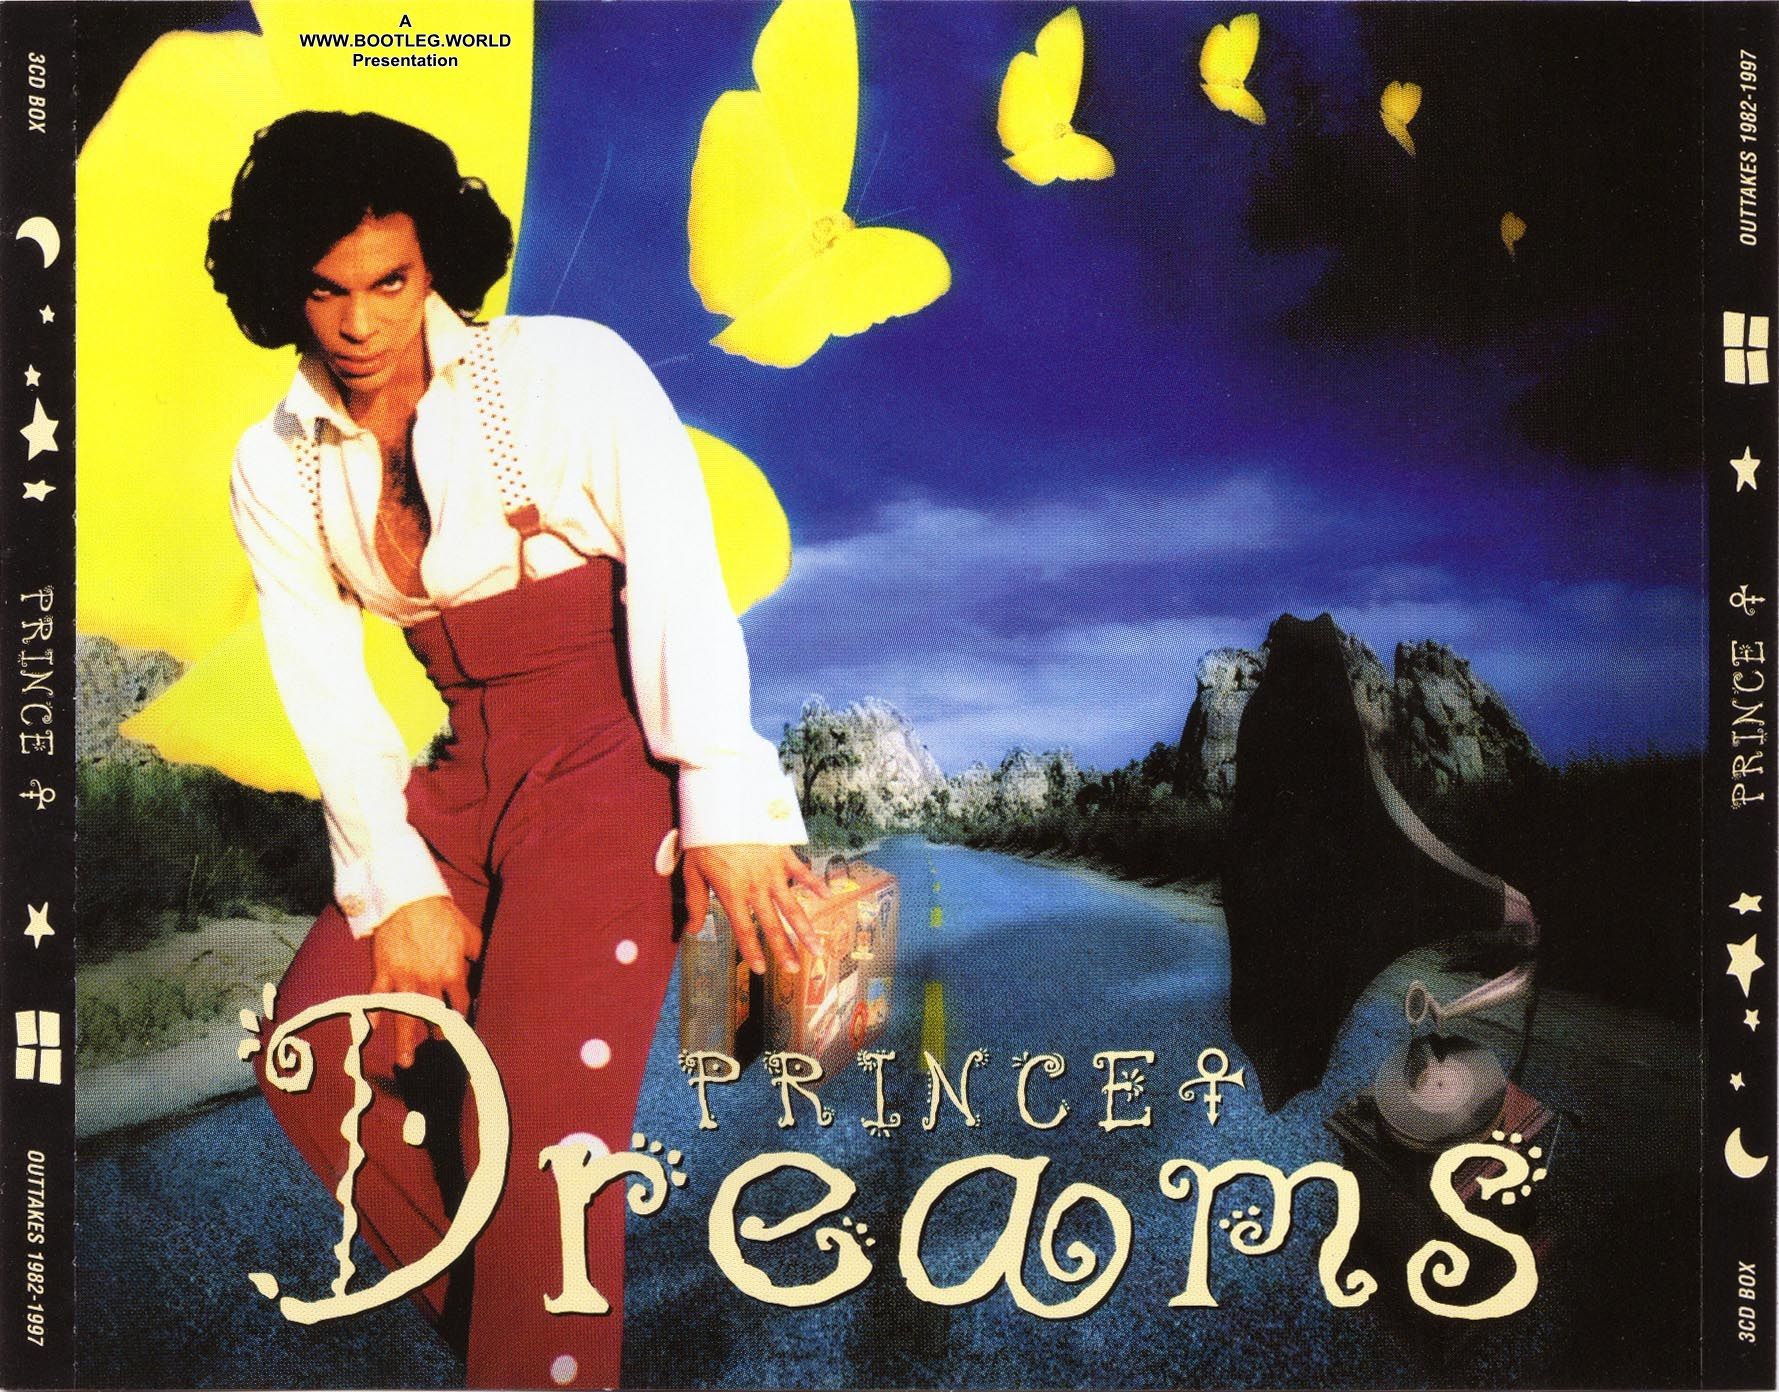 Prince 1982 1997 dreams demos unreleased outtakes paisley park studios ill do anything tb023 thunderball